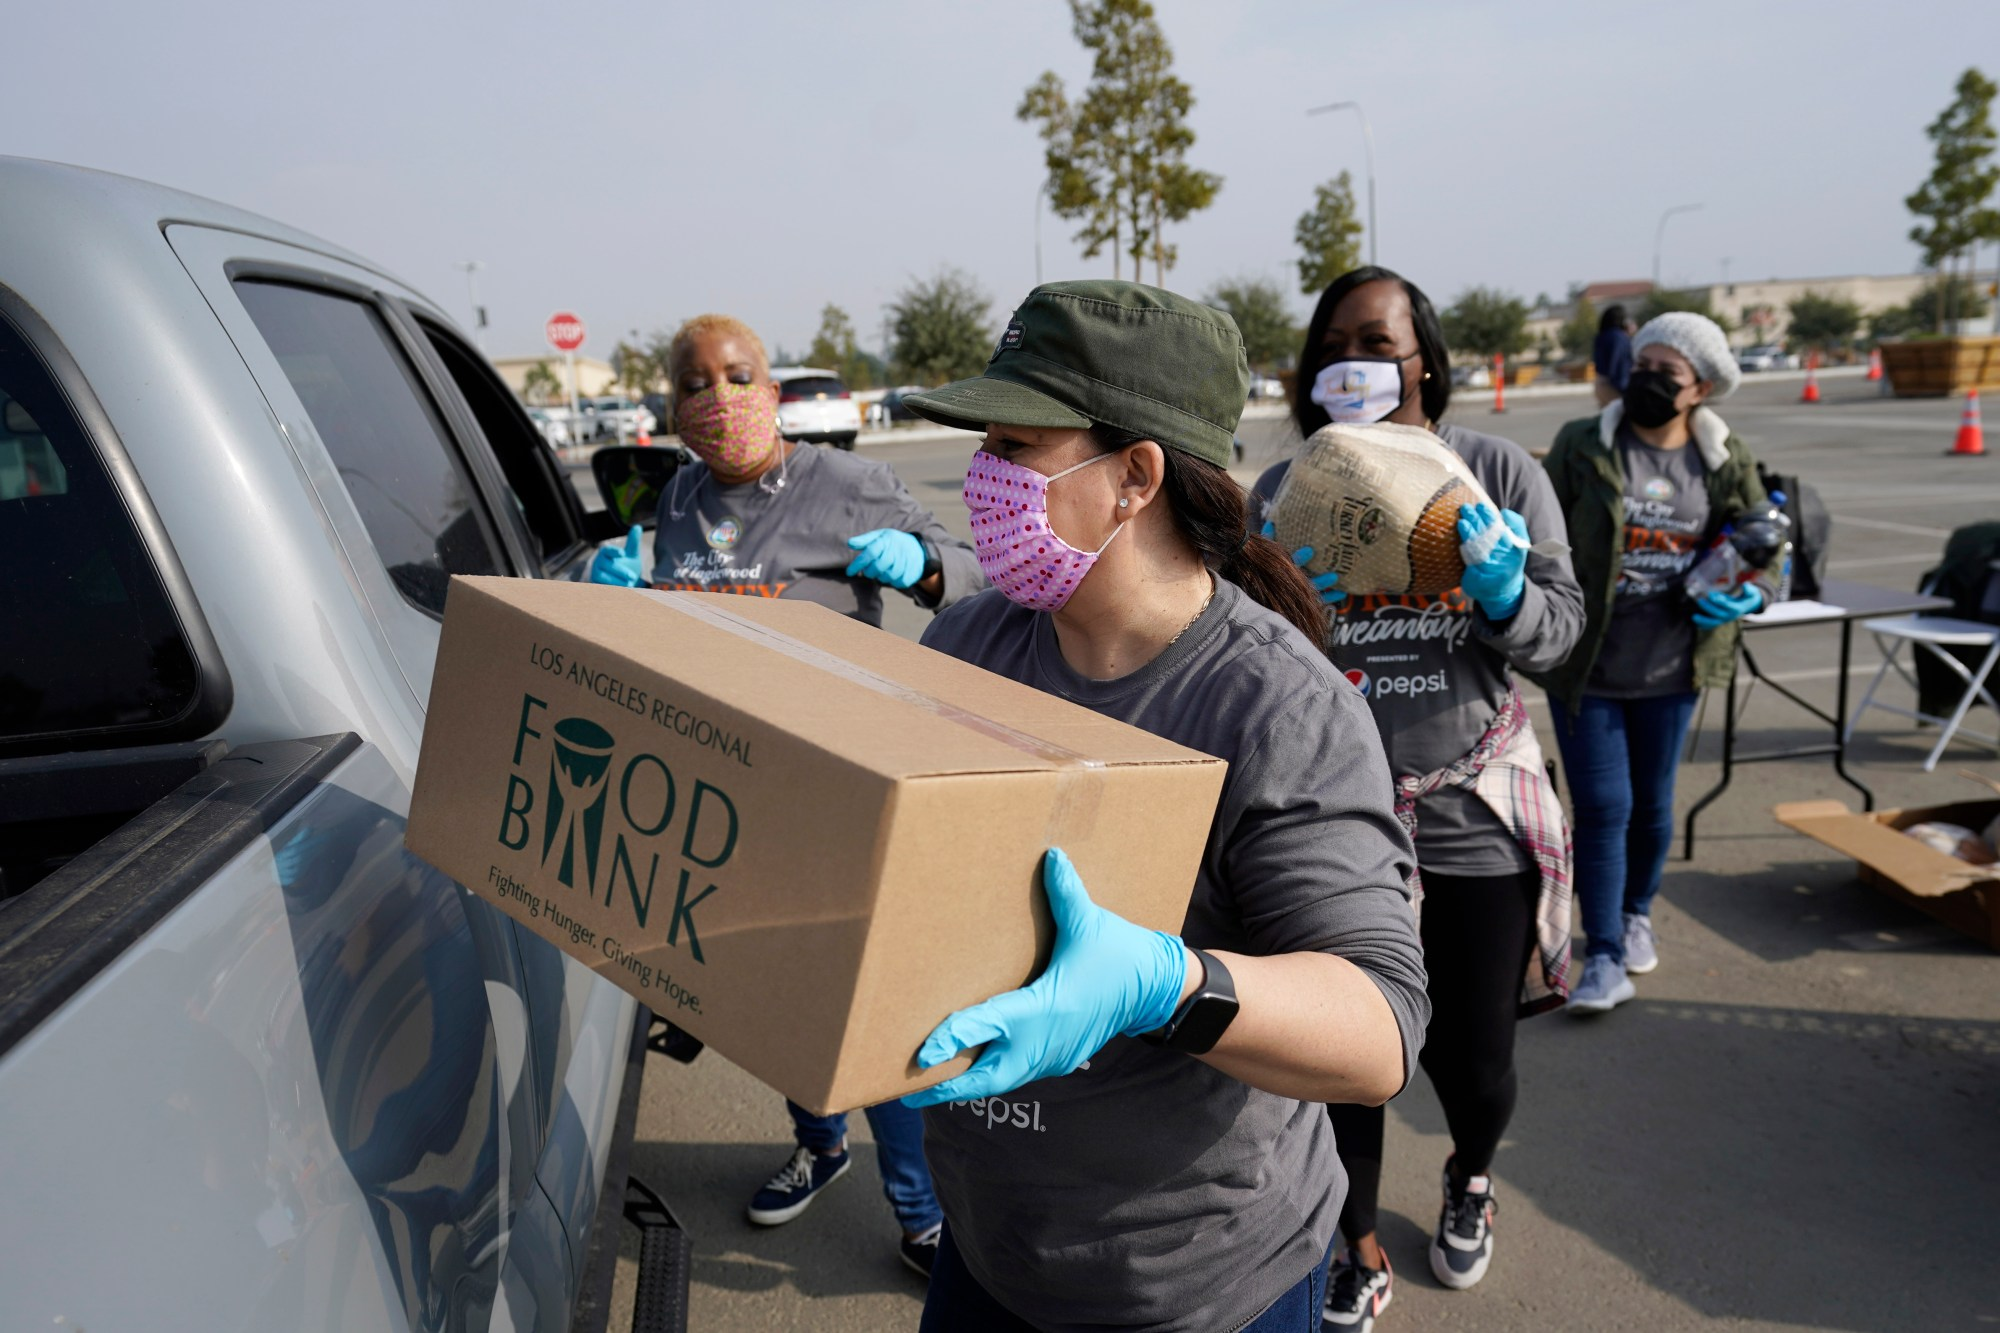 Volunteers load a pickup truck at a food distribution center set up at SoFi Stadium ahead of Thanksgiving and amid the COVID-19 pandemic, Monday, Nov. 23, 2020, in Inglewood, Calif. (AP Photo/Marcio Jose Sanchez)